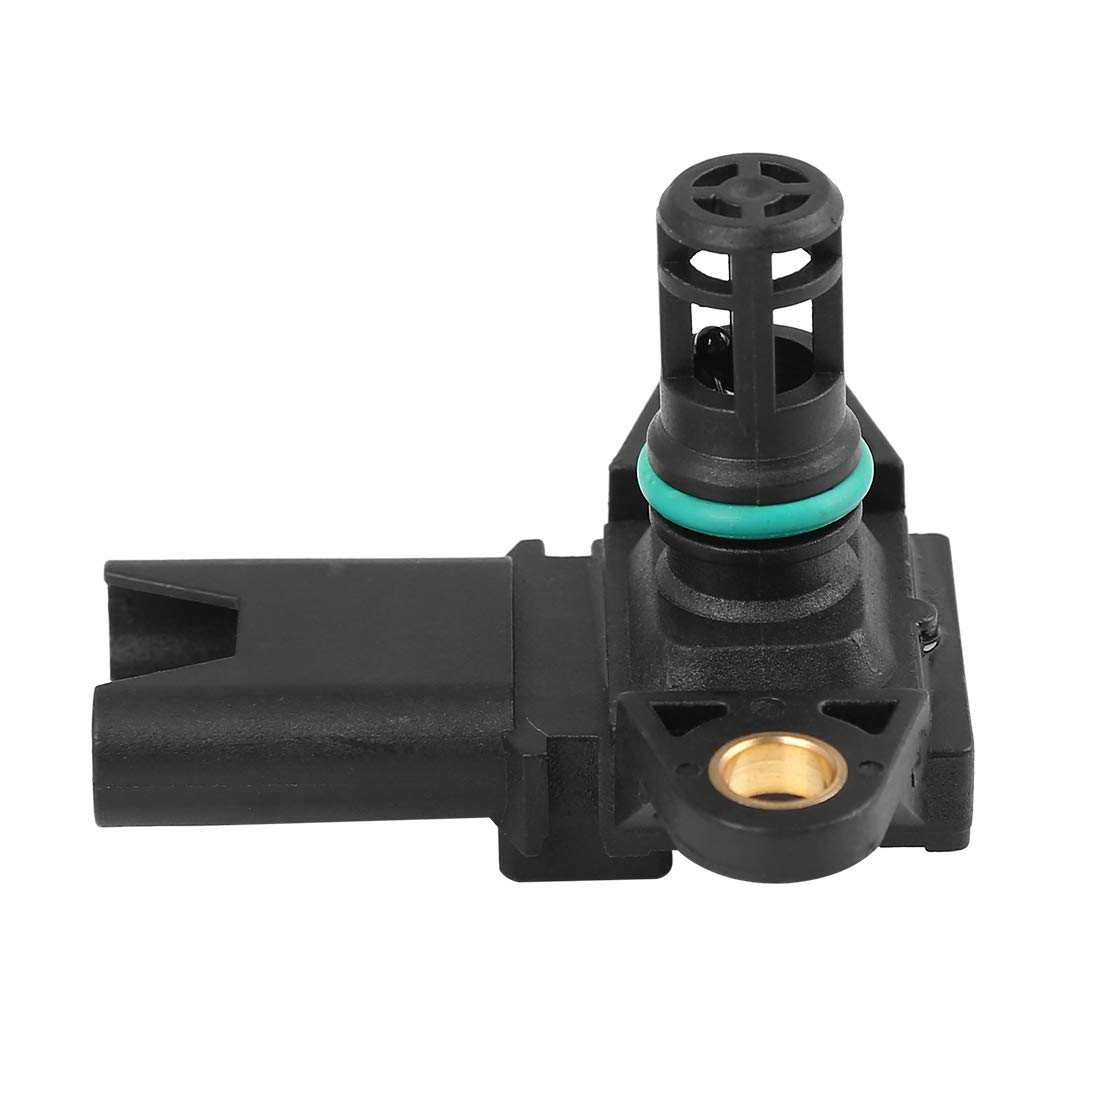 X AUTOHAUX Car Manifold Intake Air Absolute Pressure MAP Sensor 13627551429 7585493 for Bmw 335xi 335i 535i 550i 740i 750i X3 X5 X6 Z4